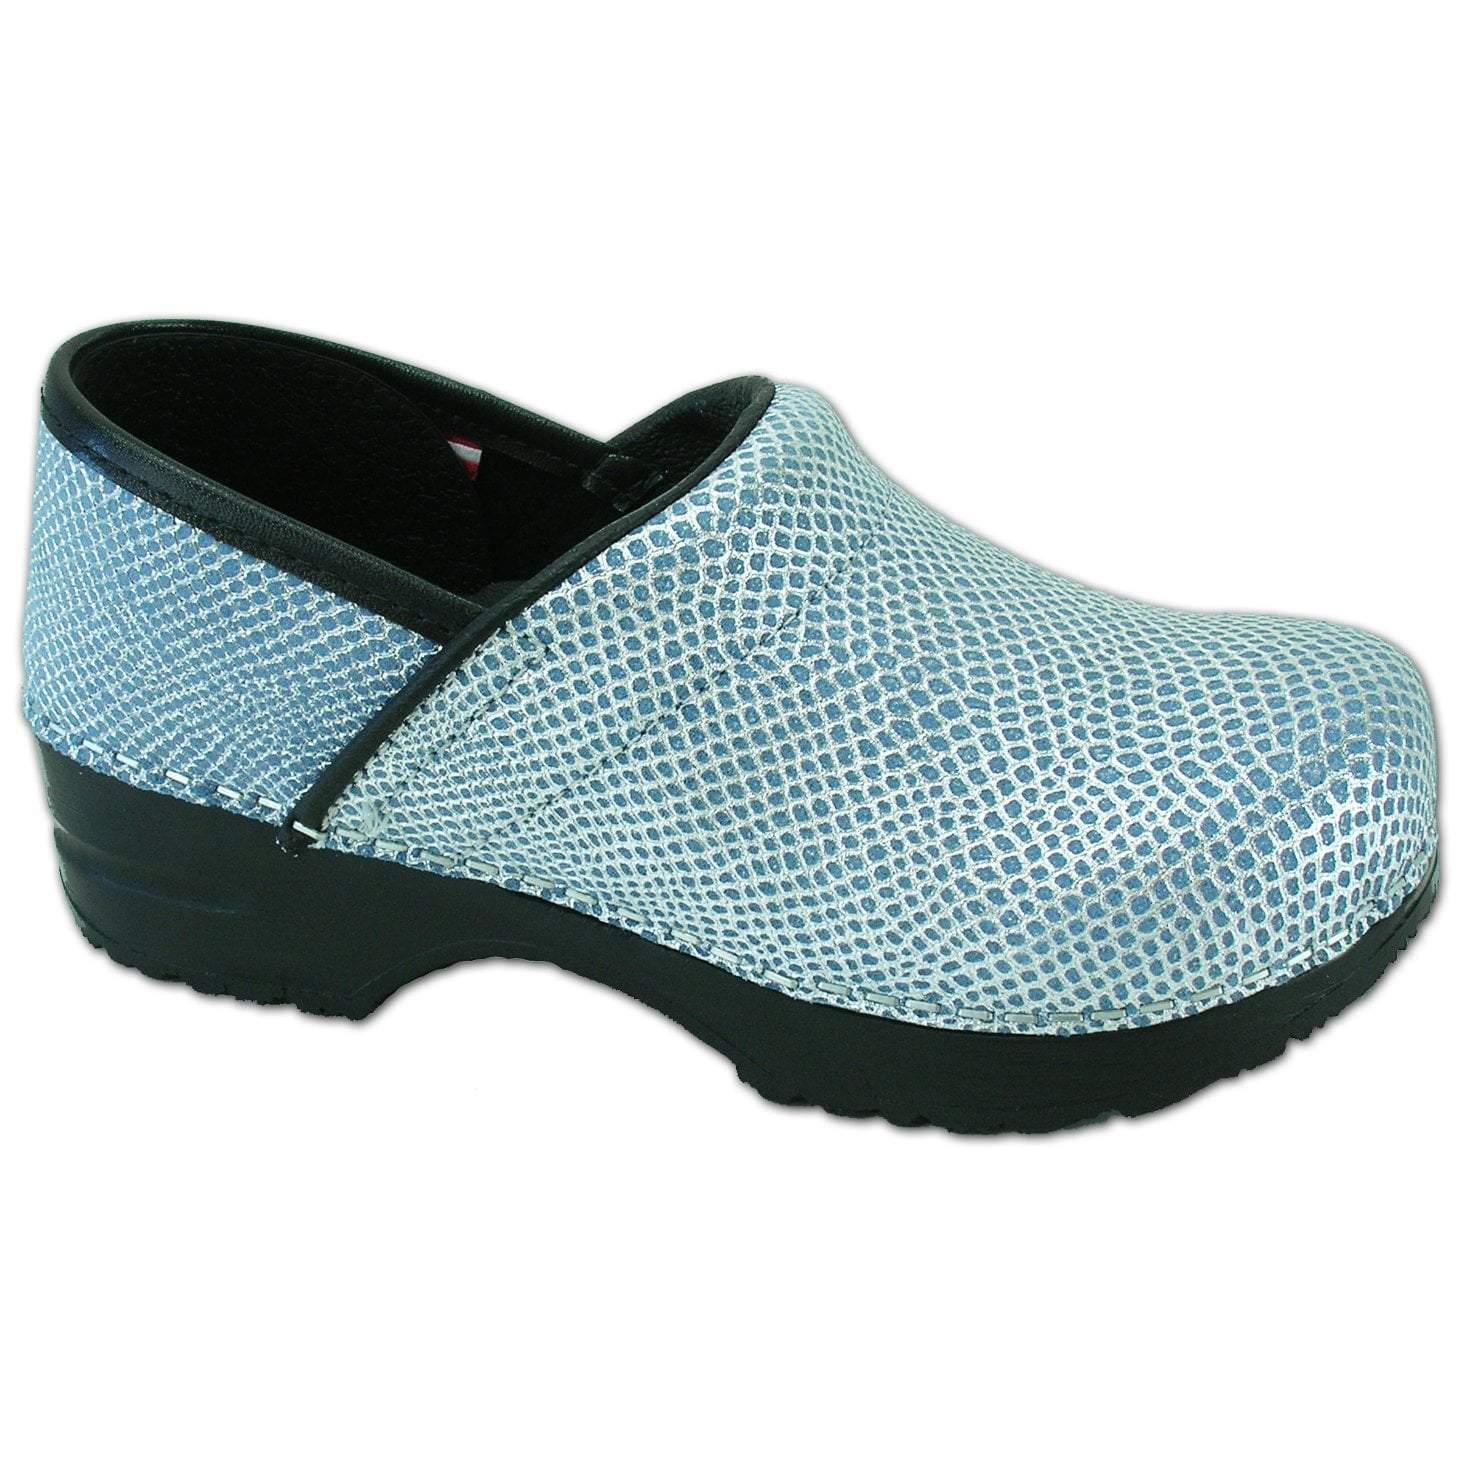 Sanita Kadi Kids' Closed Back Clog